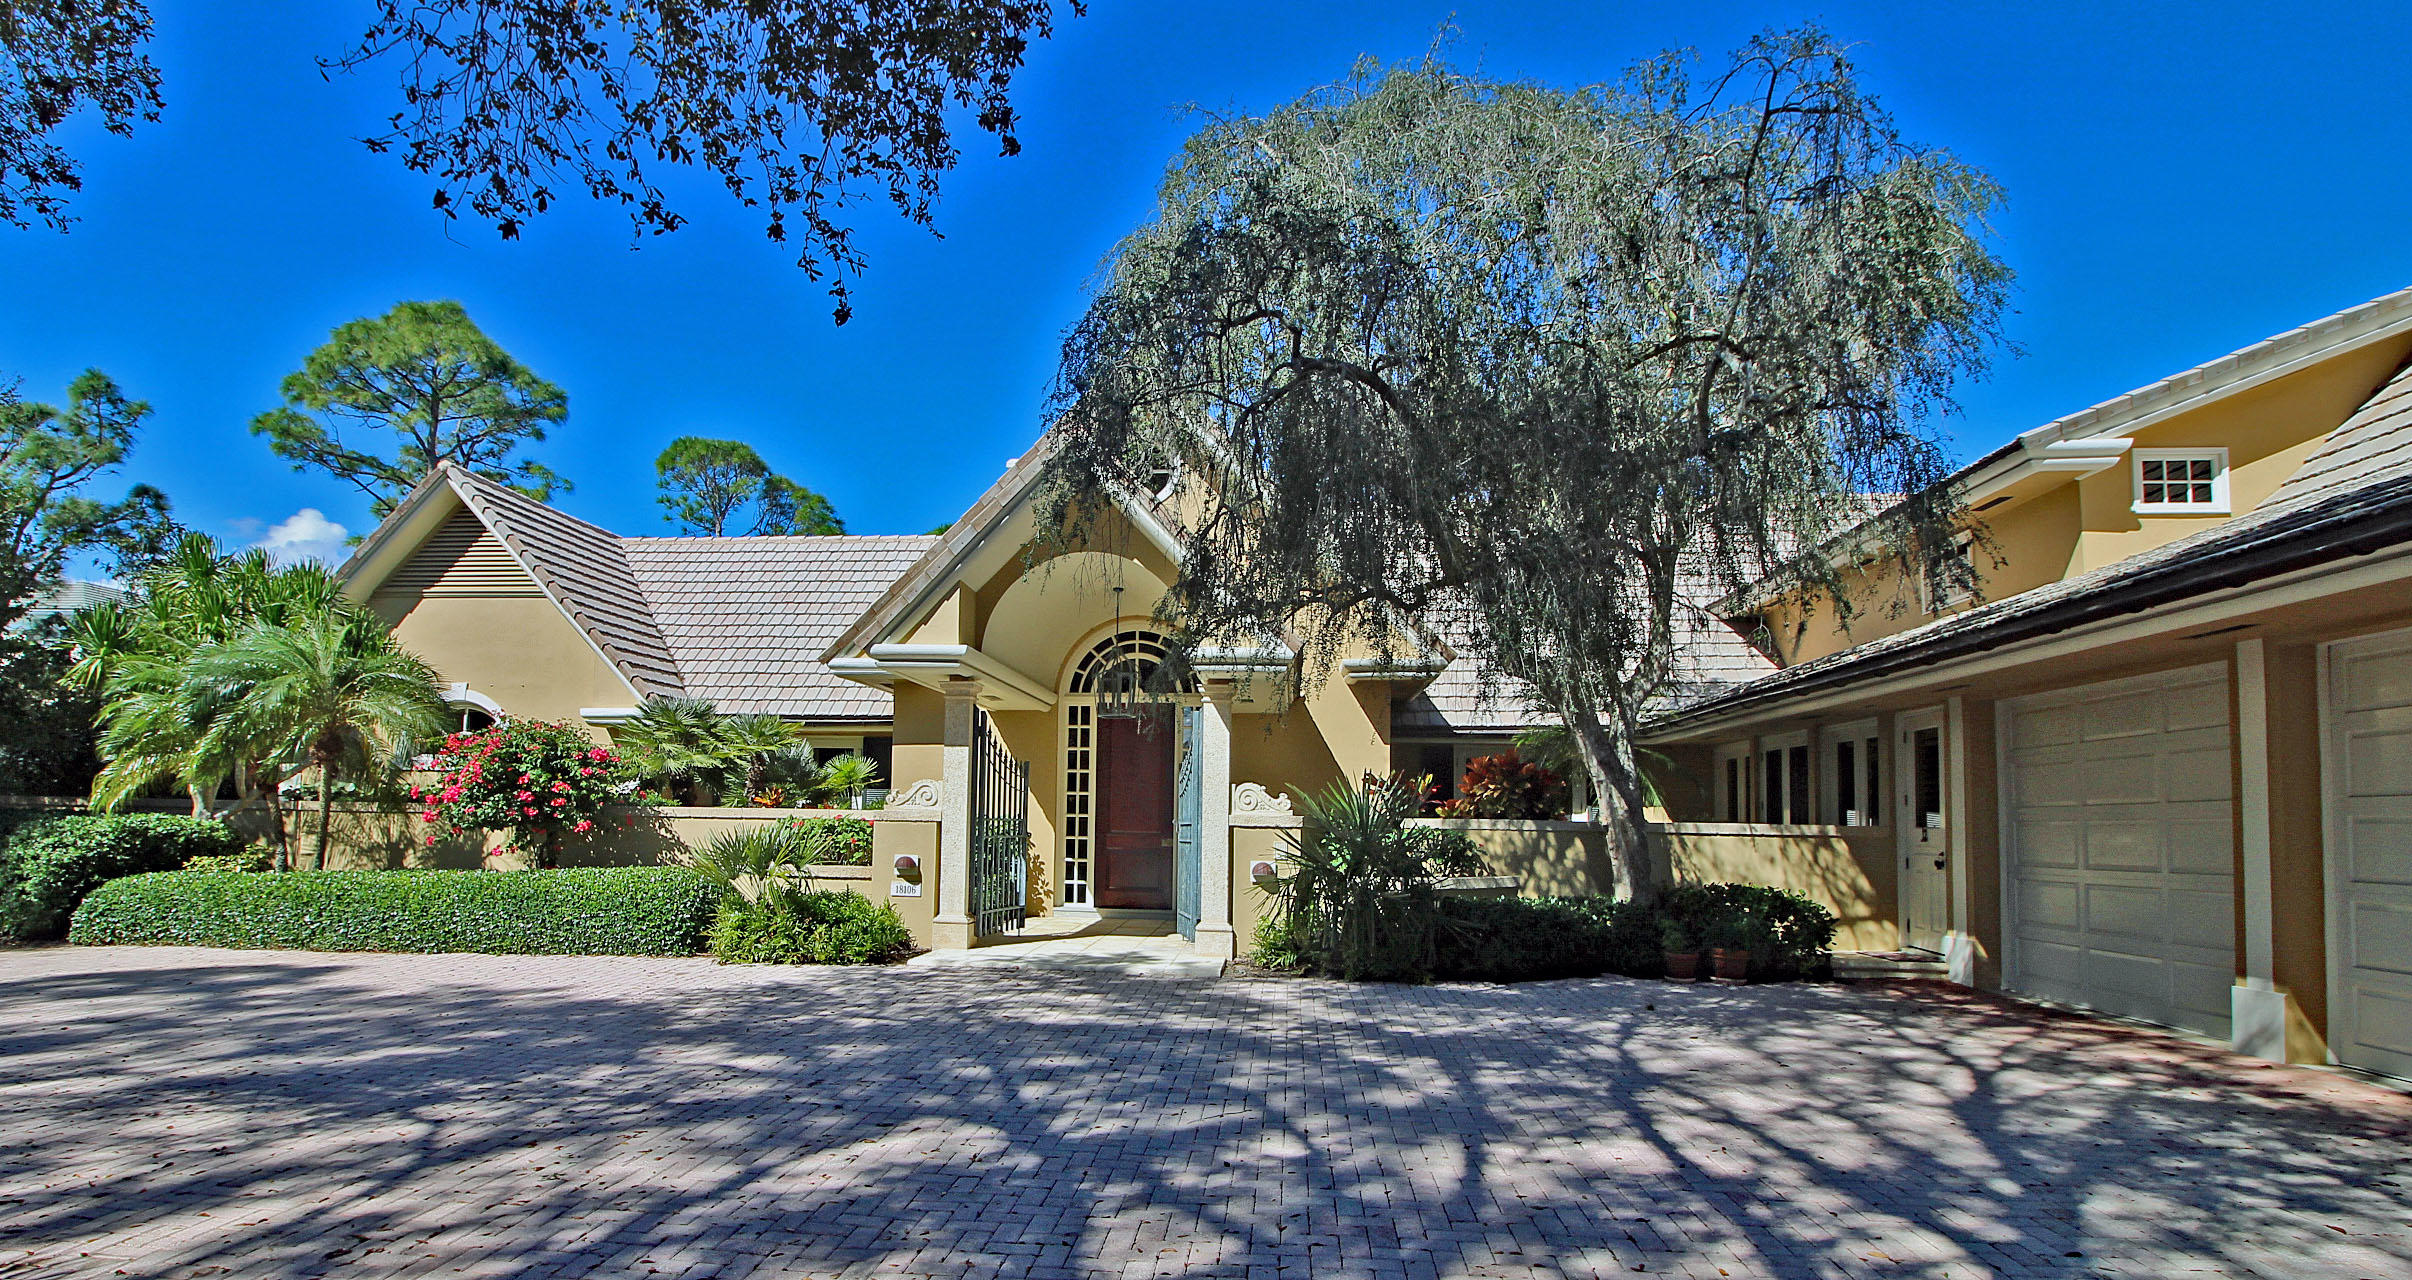 Home for sale in Jupiter Hills Village Tequesta Florida